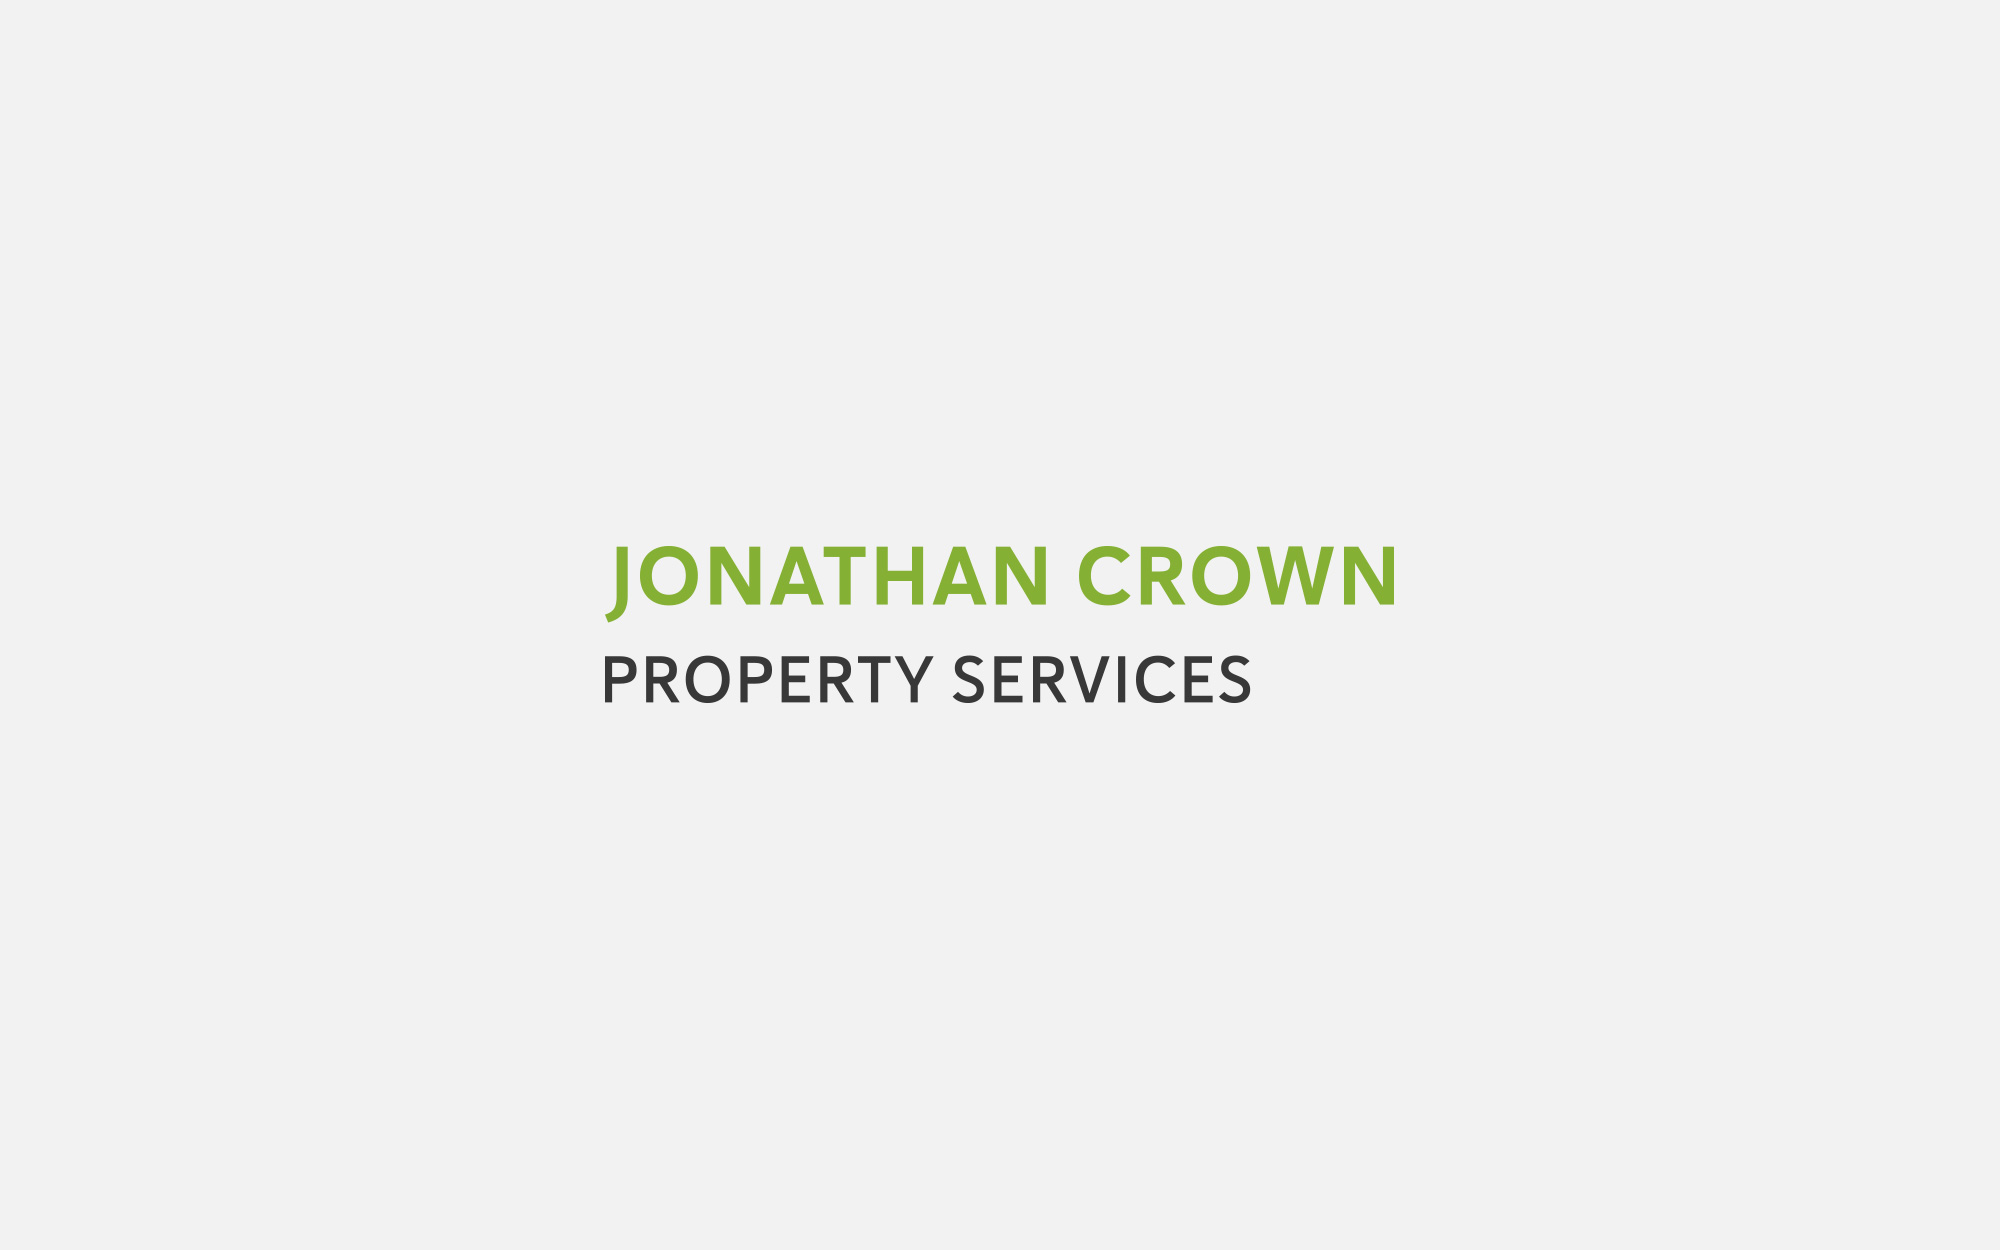 Jonathan Crown Property Services Logo design